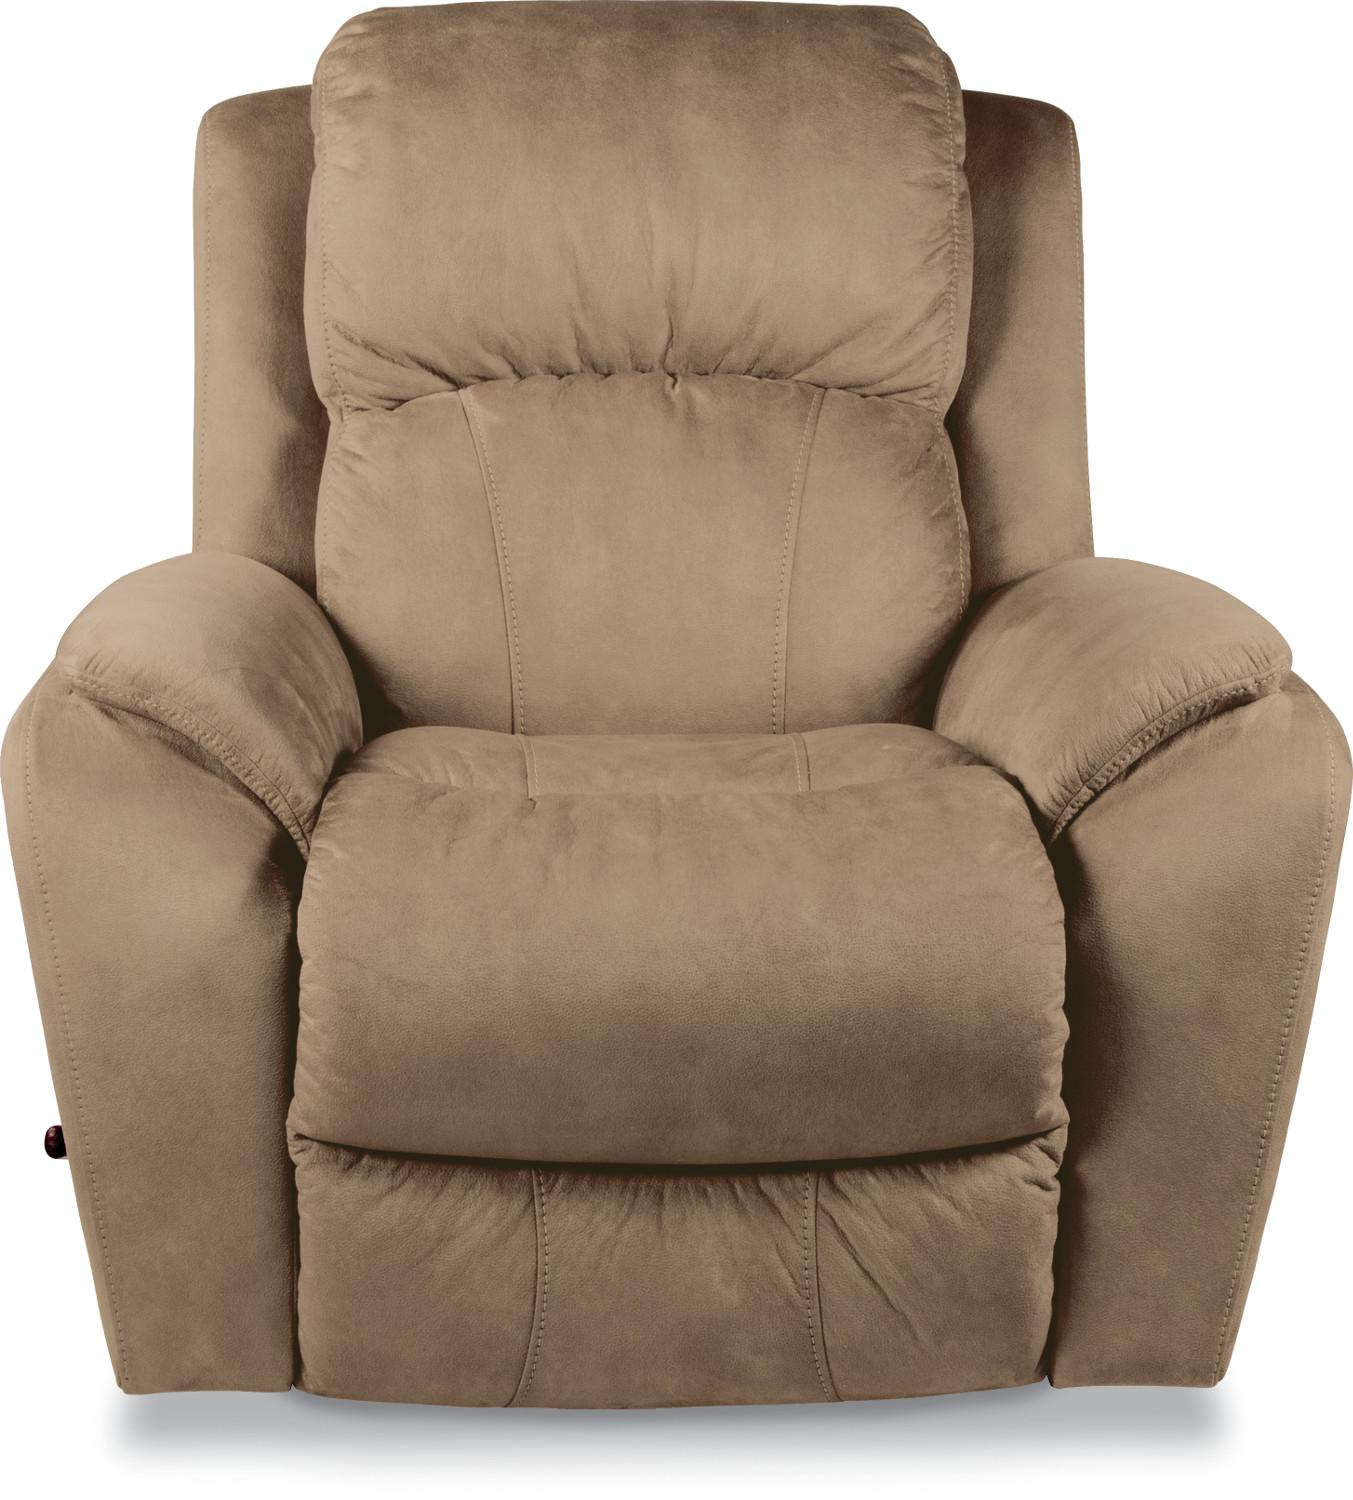 Casual RECLINA ROCKER Recliner with Pillow Arms by La Z Boy